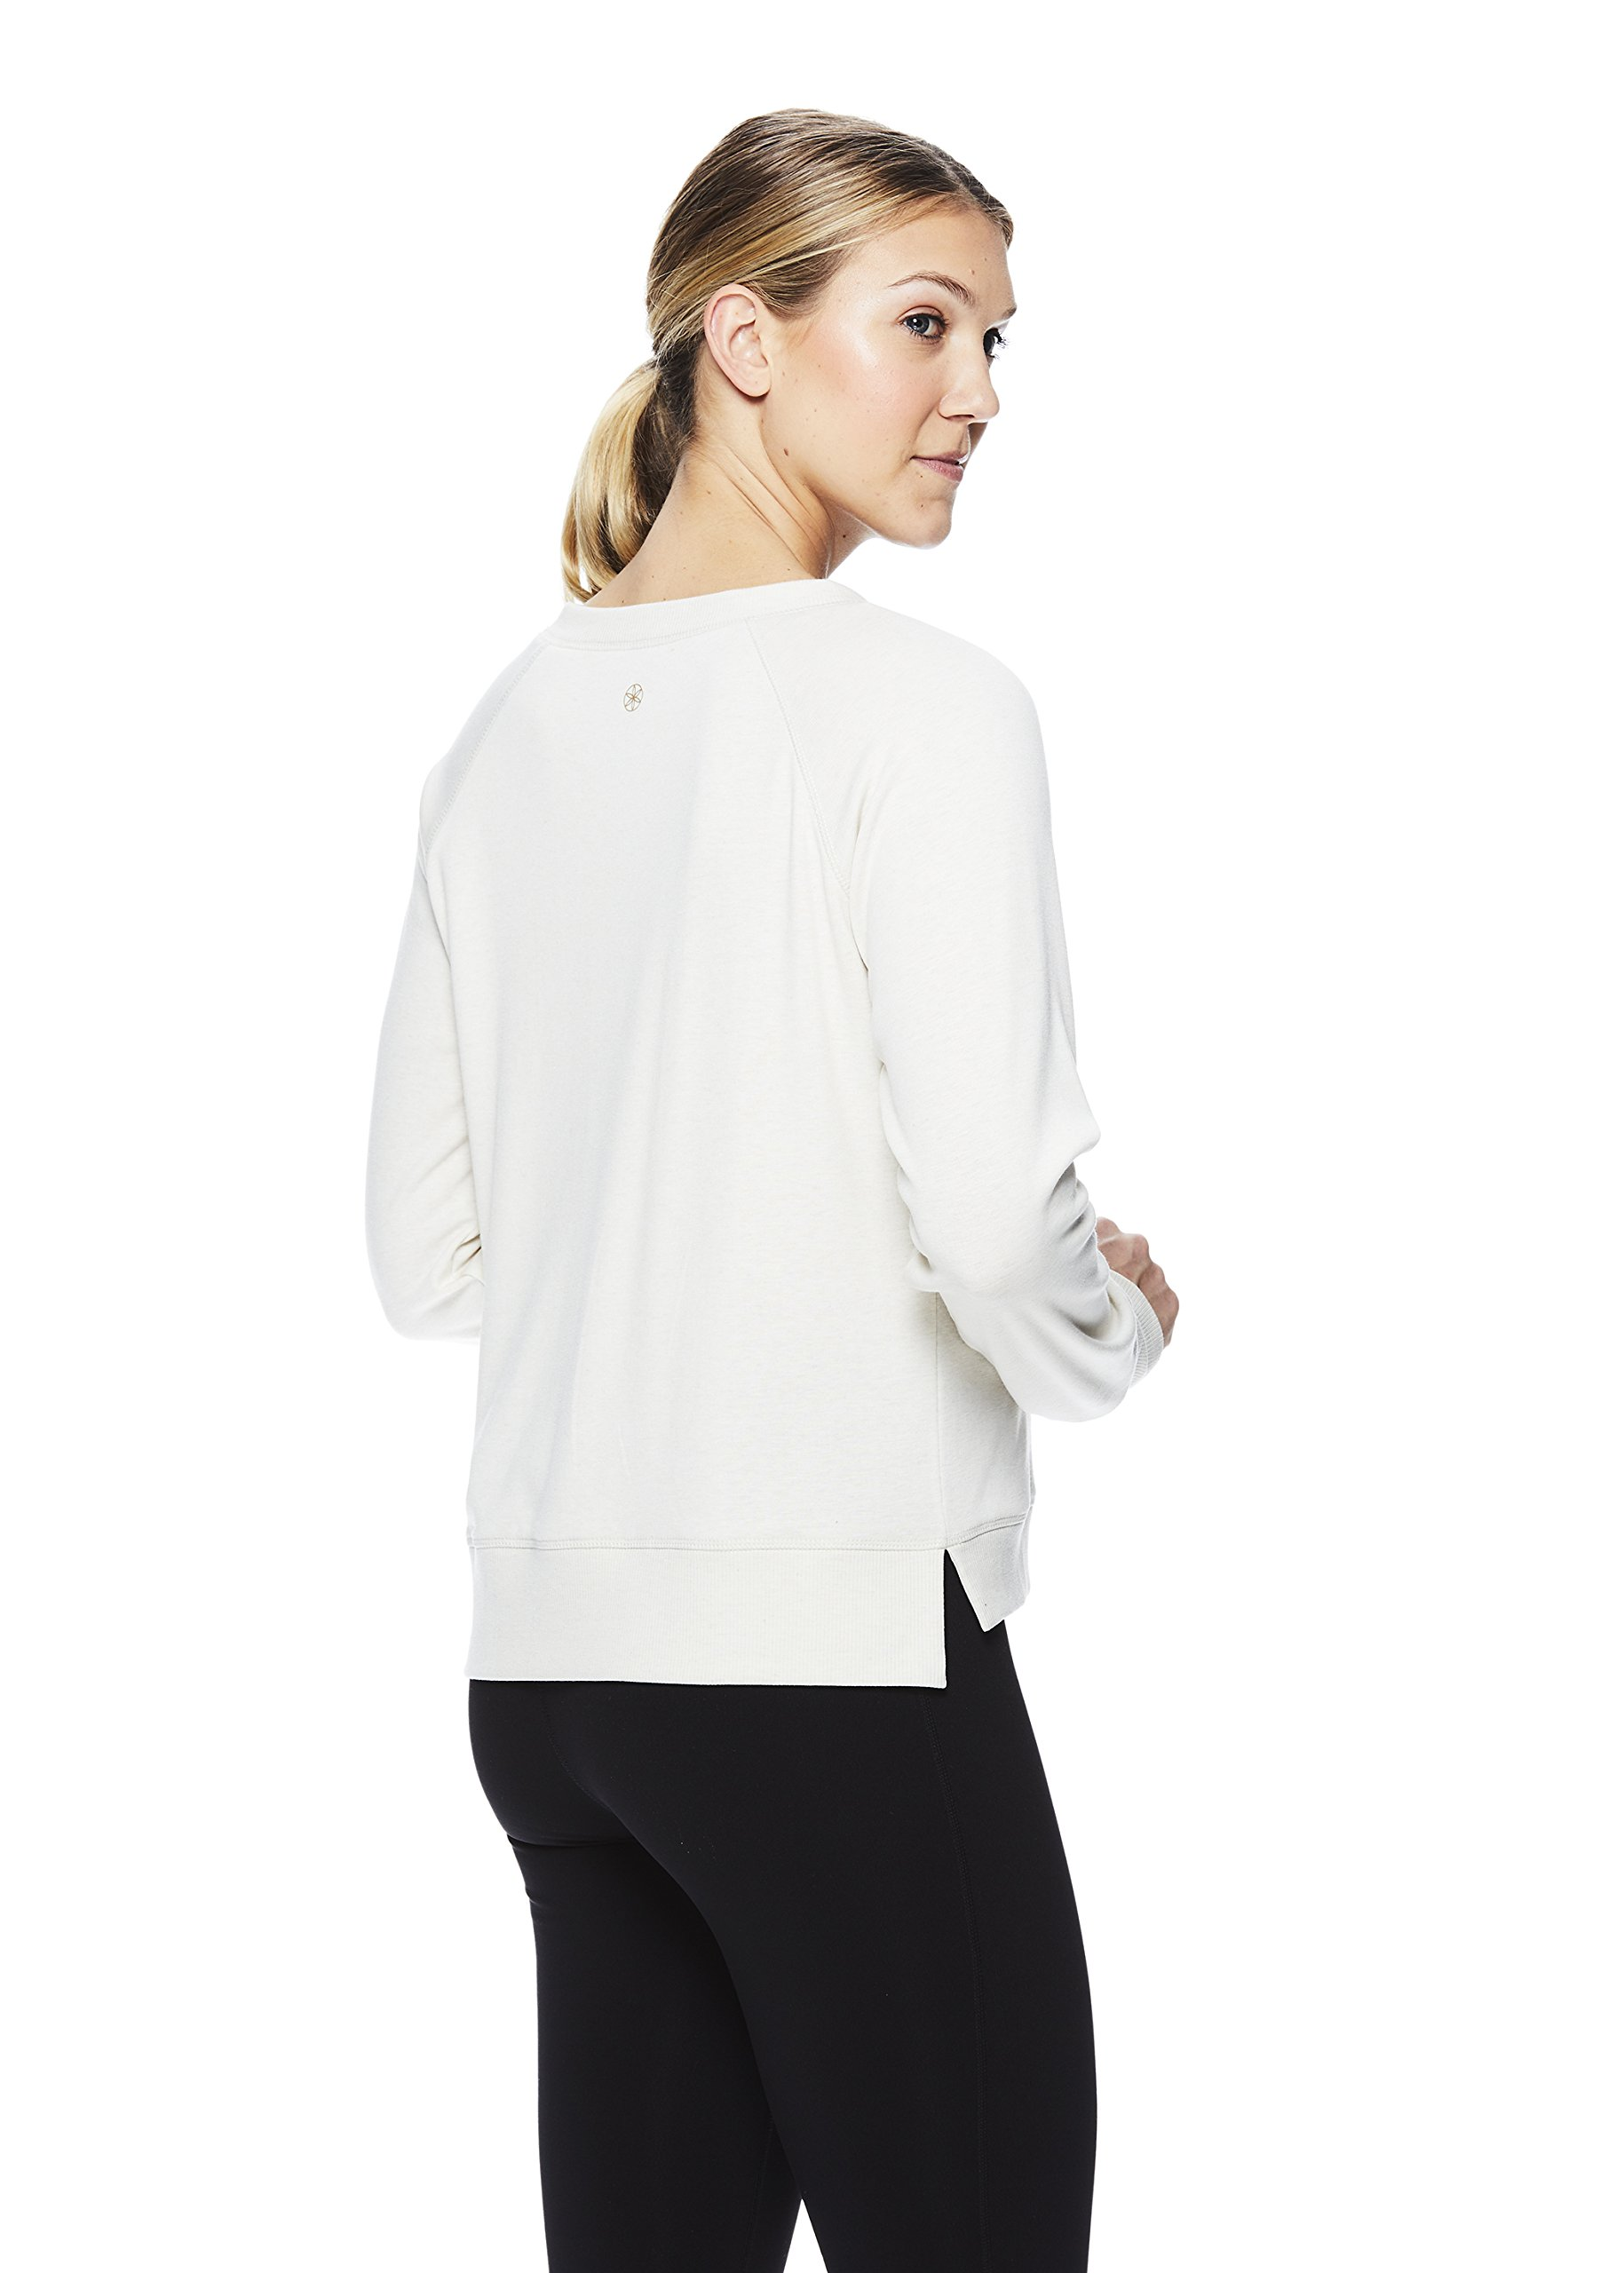 Gaiam Women's Pullover Yoga Sweater - Long Sleeve Graphic Activewear Shirt